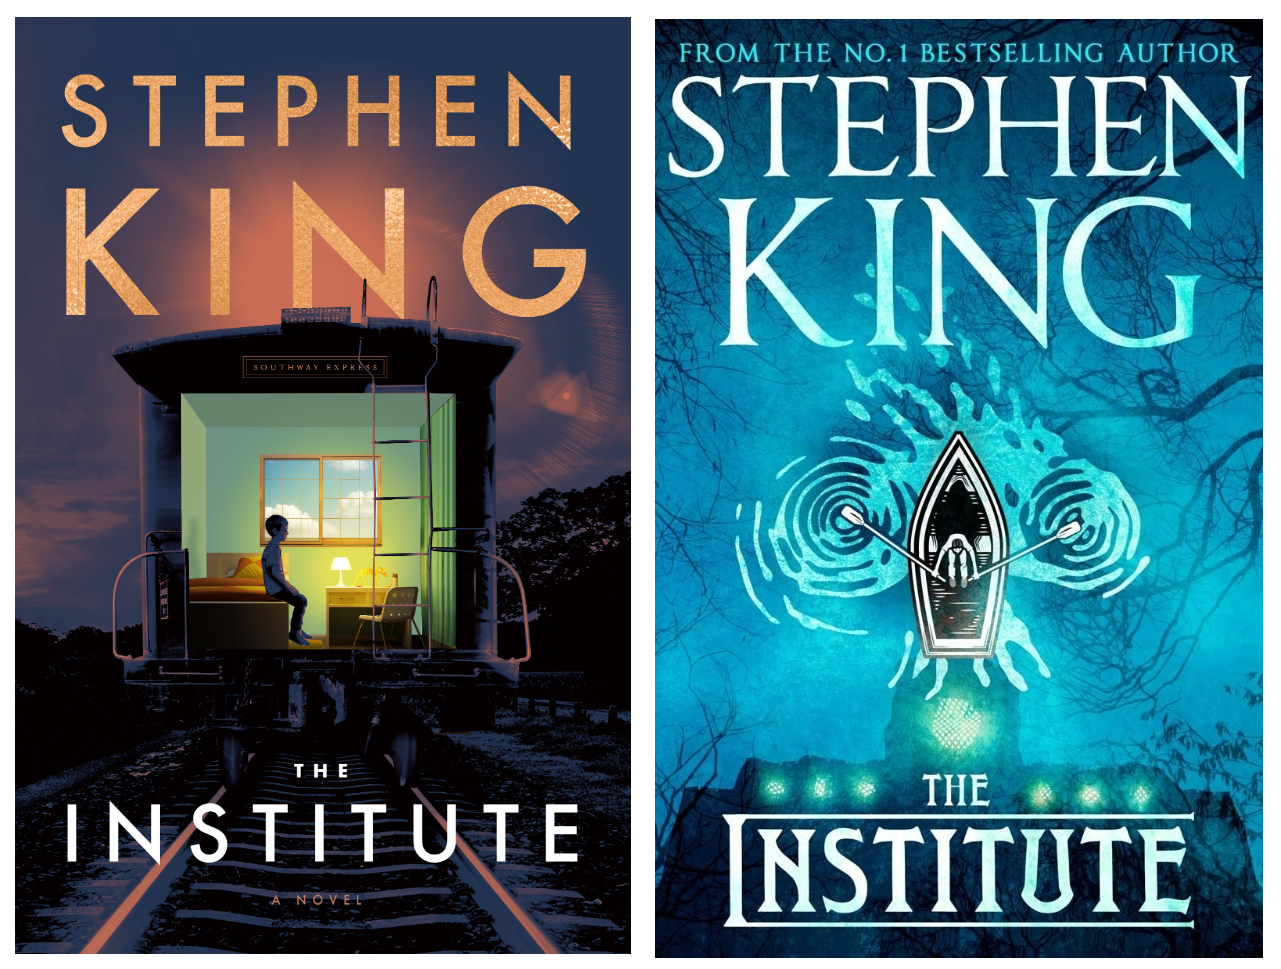 Sadie & Donnie's Side By Side Review of THE INSTITUTE by Stephen King